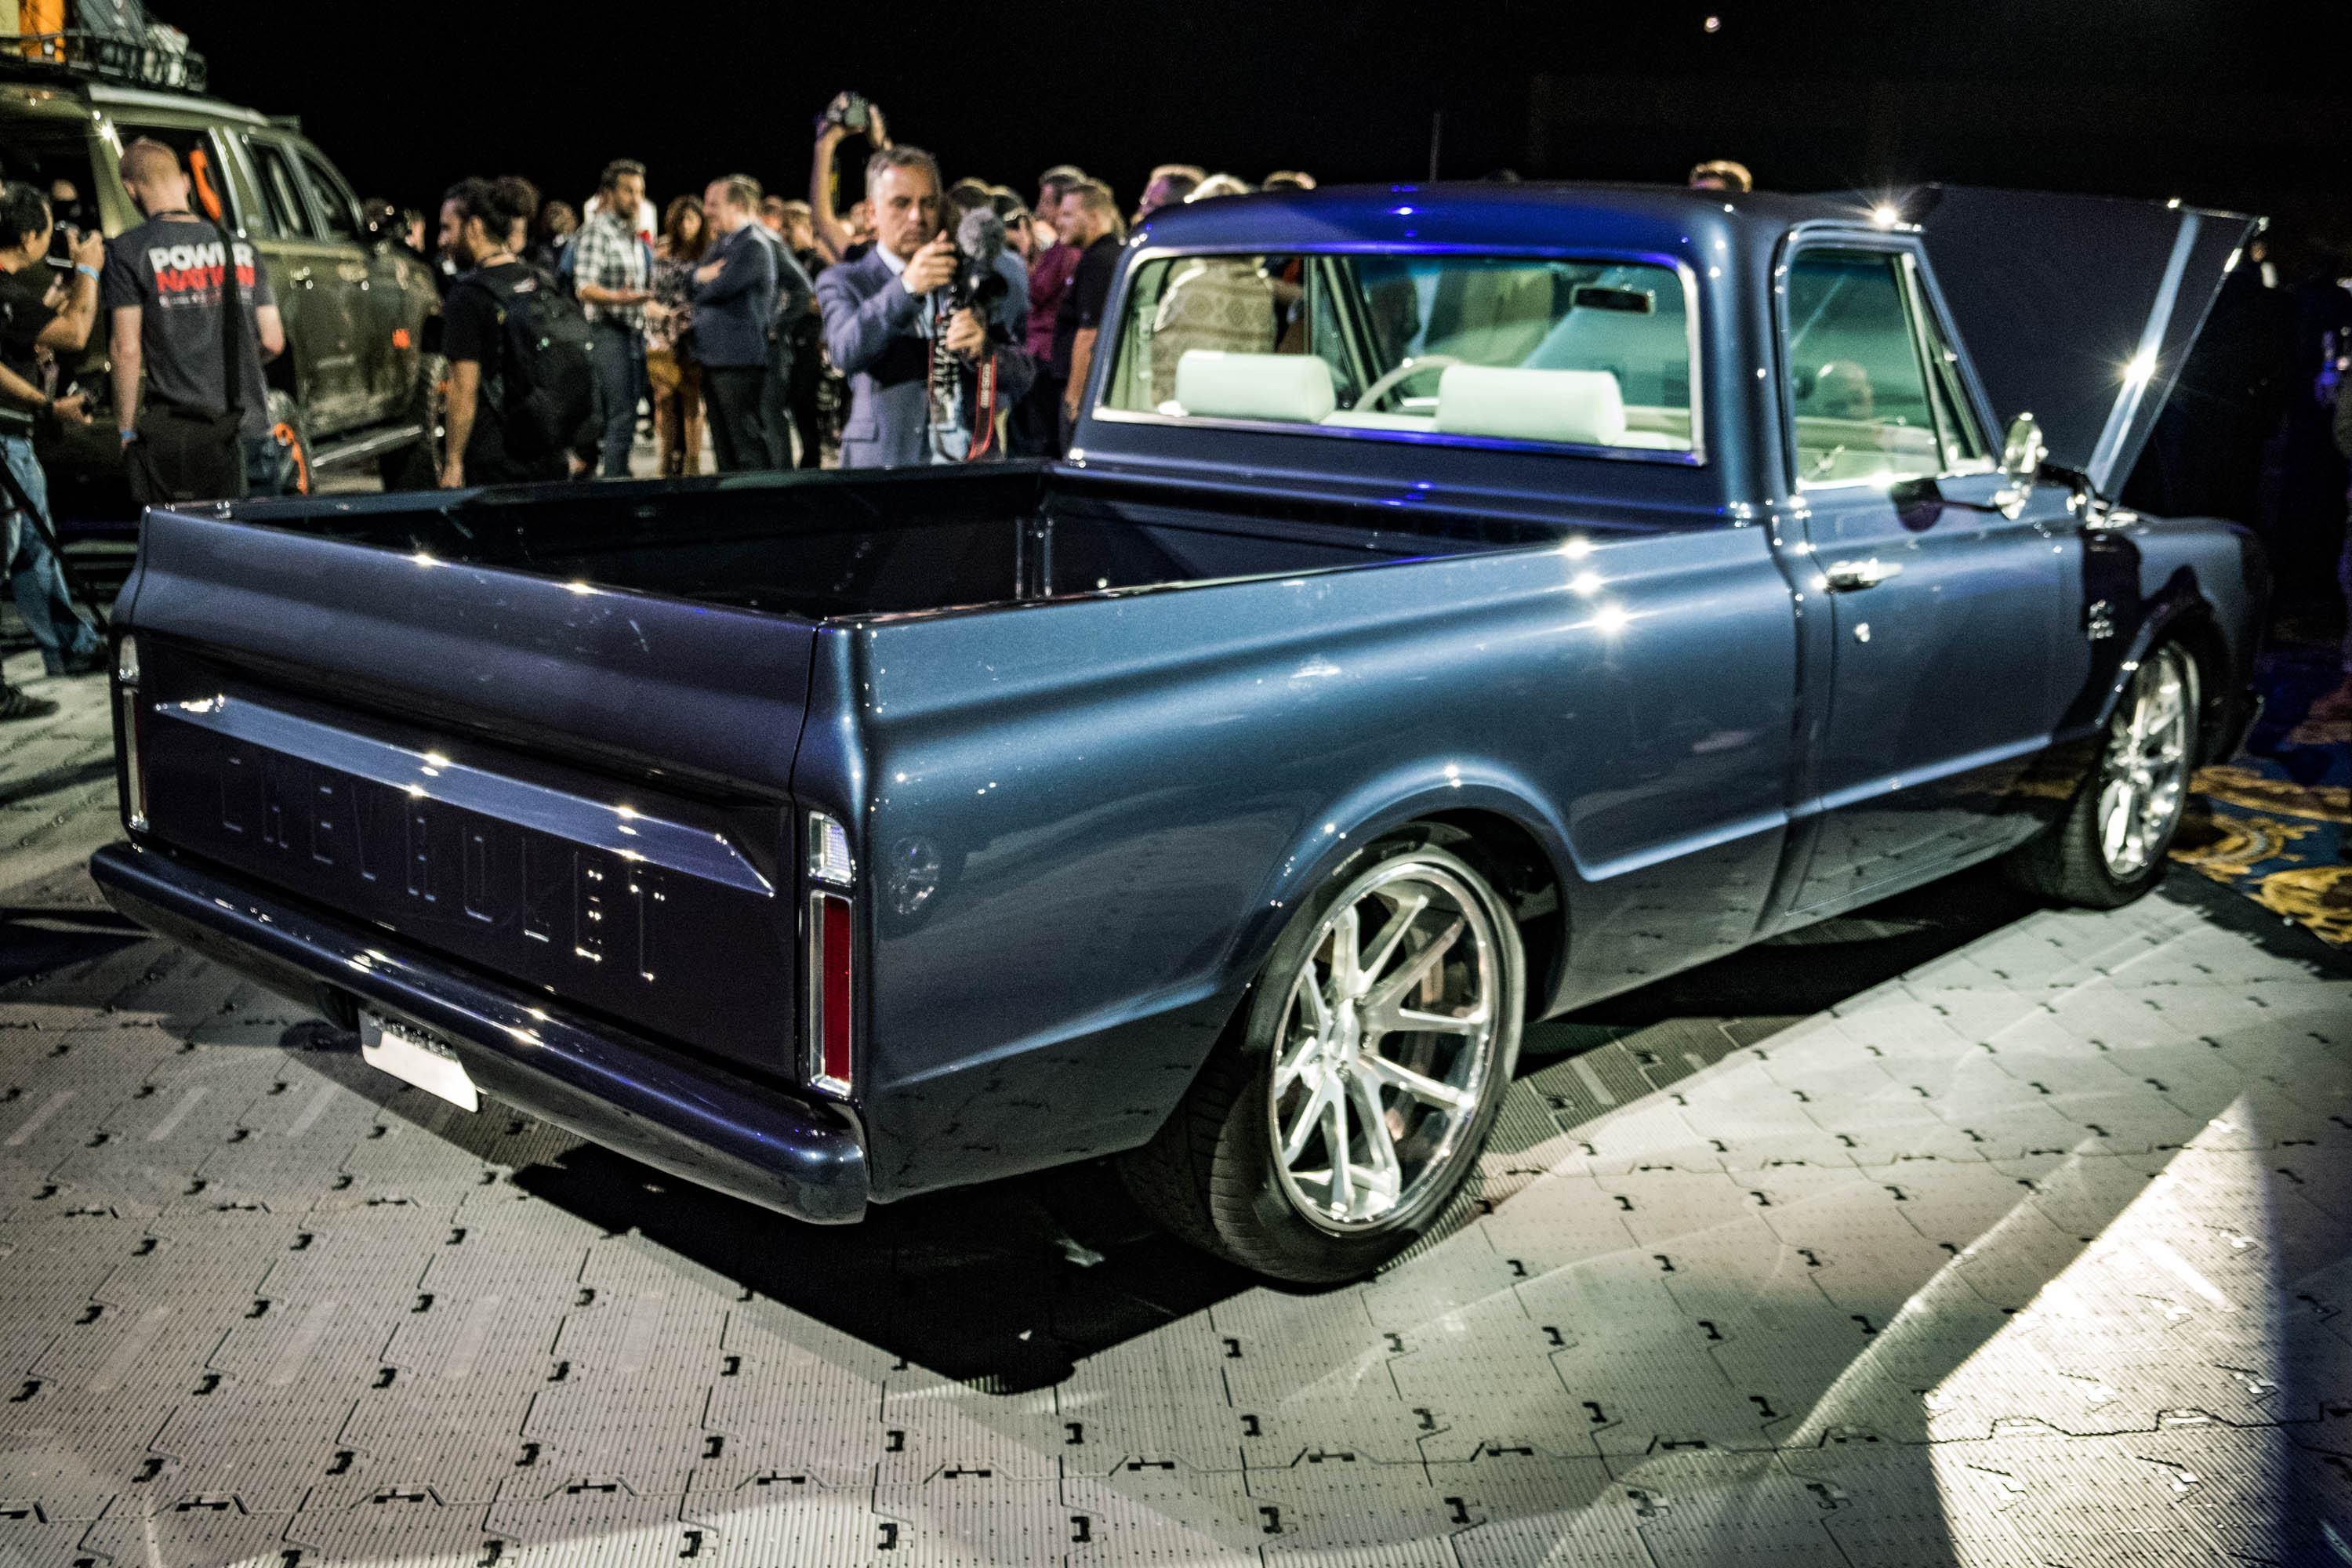 Bed of Vintage Chevy Truck